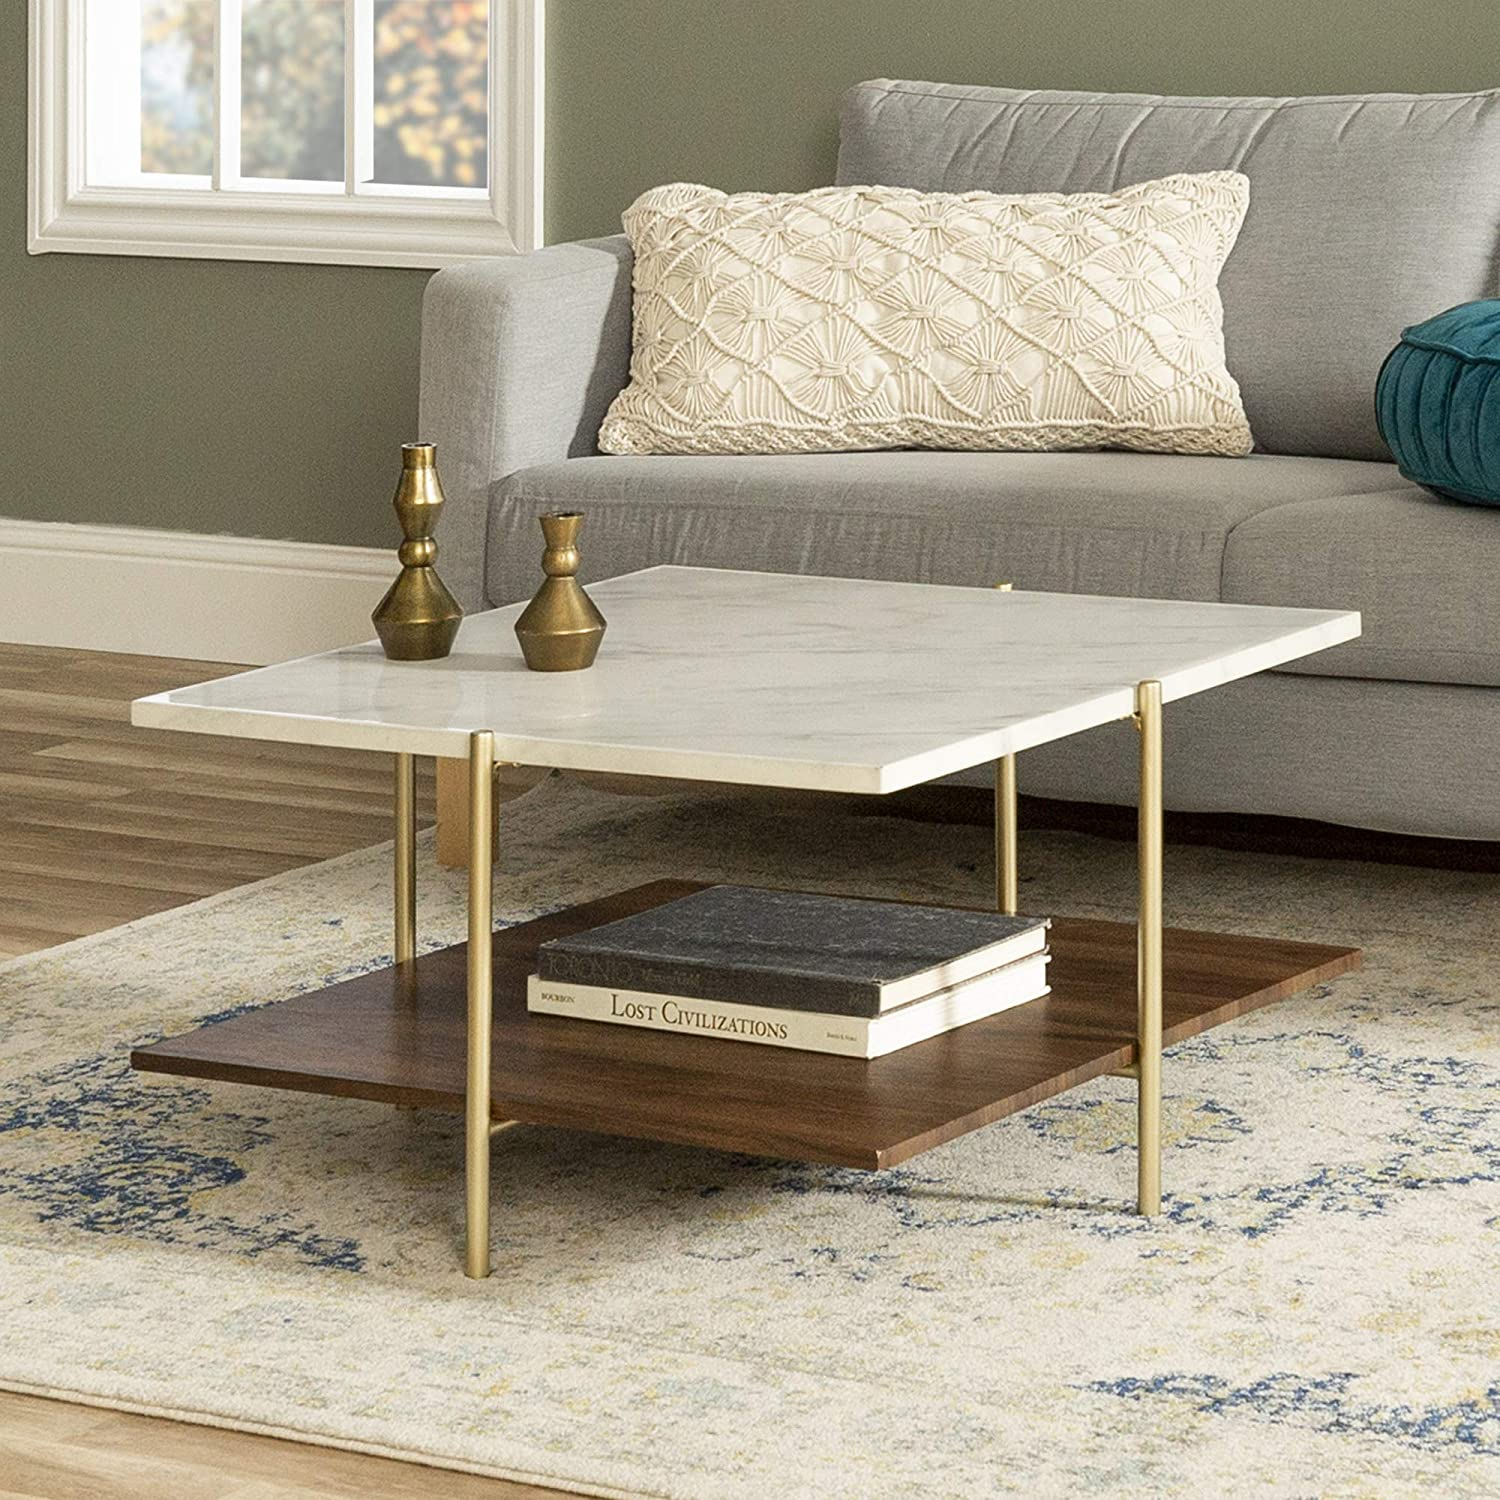 Amazon Com Walker Edison Modern Metal Base Square Coffee Table Living Room Accent Ottoman Storage Shelf 32 Inch Marble Gold Furniture Decor